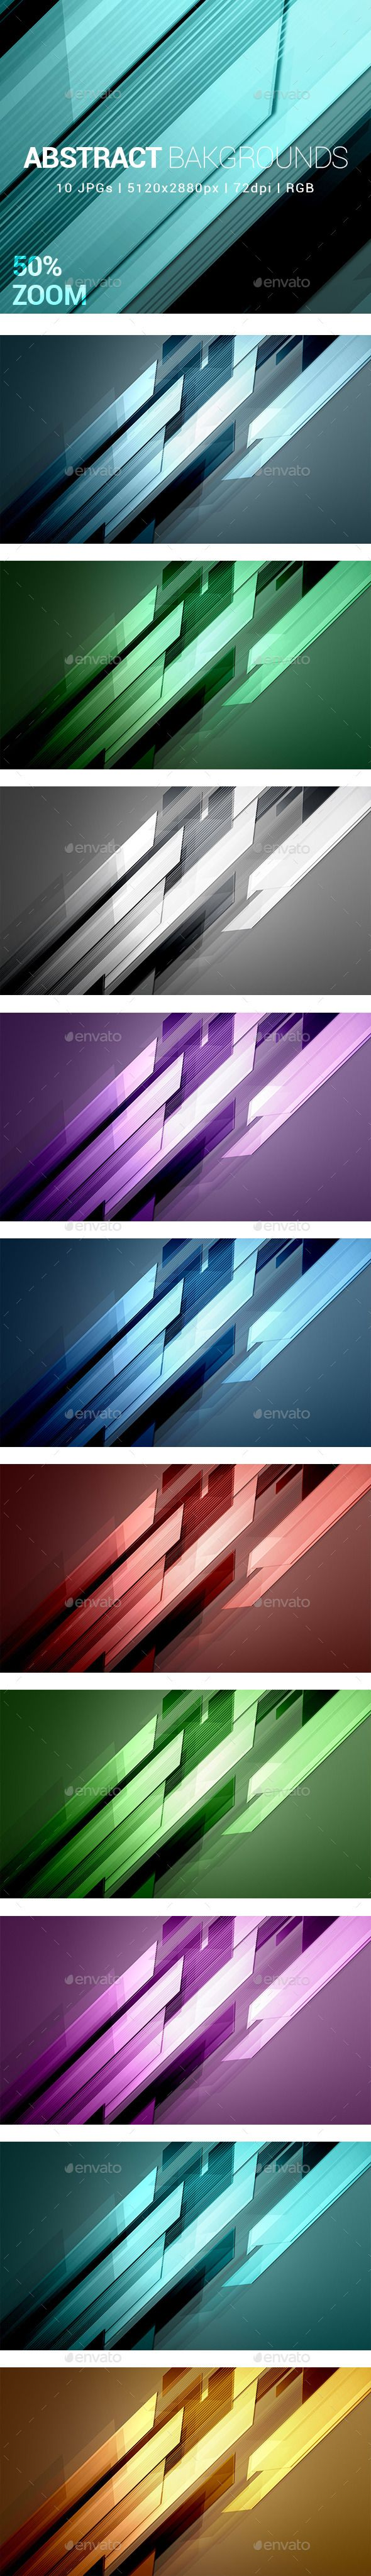 10 Abstract Backgrounds - Abstract #Backgrounds Download here: https://graphicriver.net/item/10-abstract-backgrounds/13266200?ref=alena994